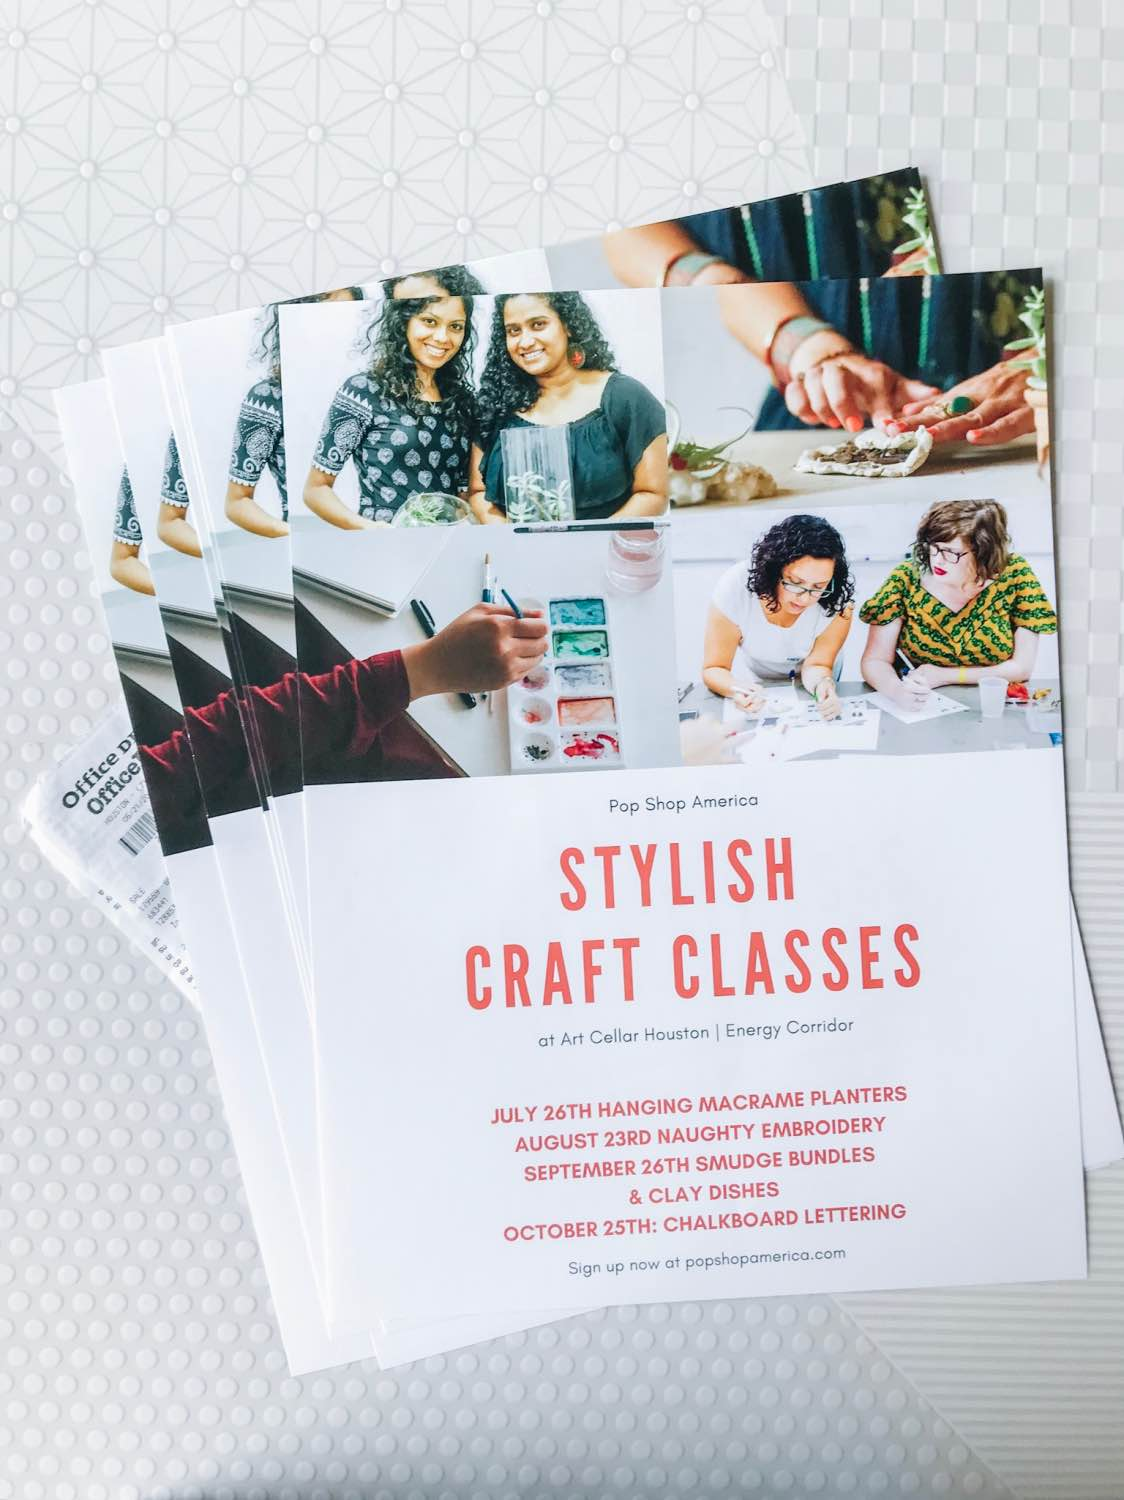 stylish craft classes posters small business marketing materials